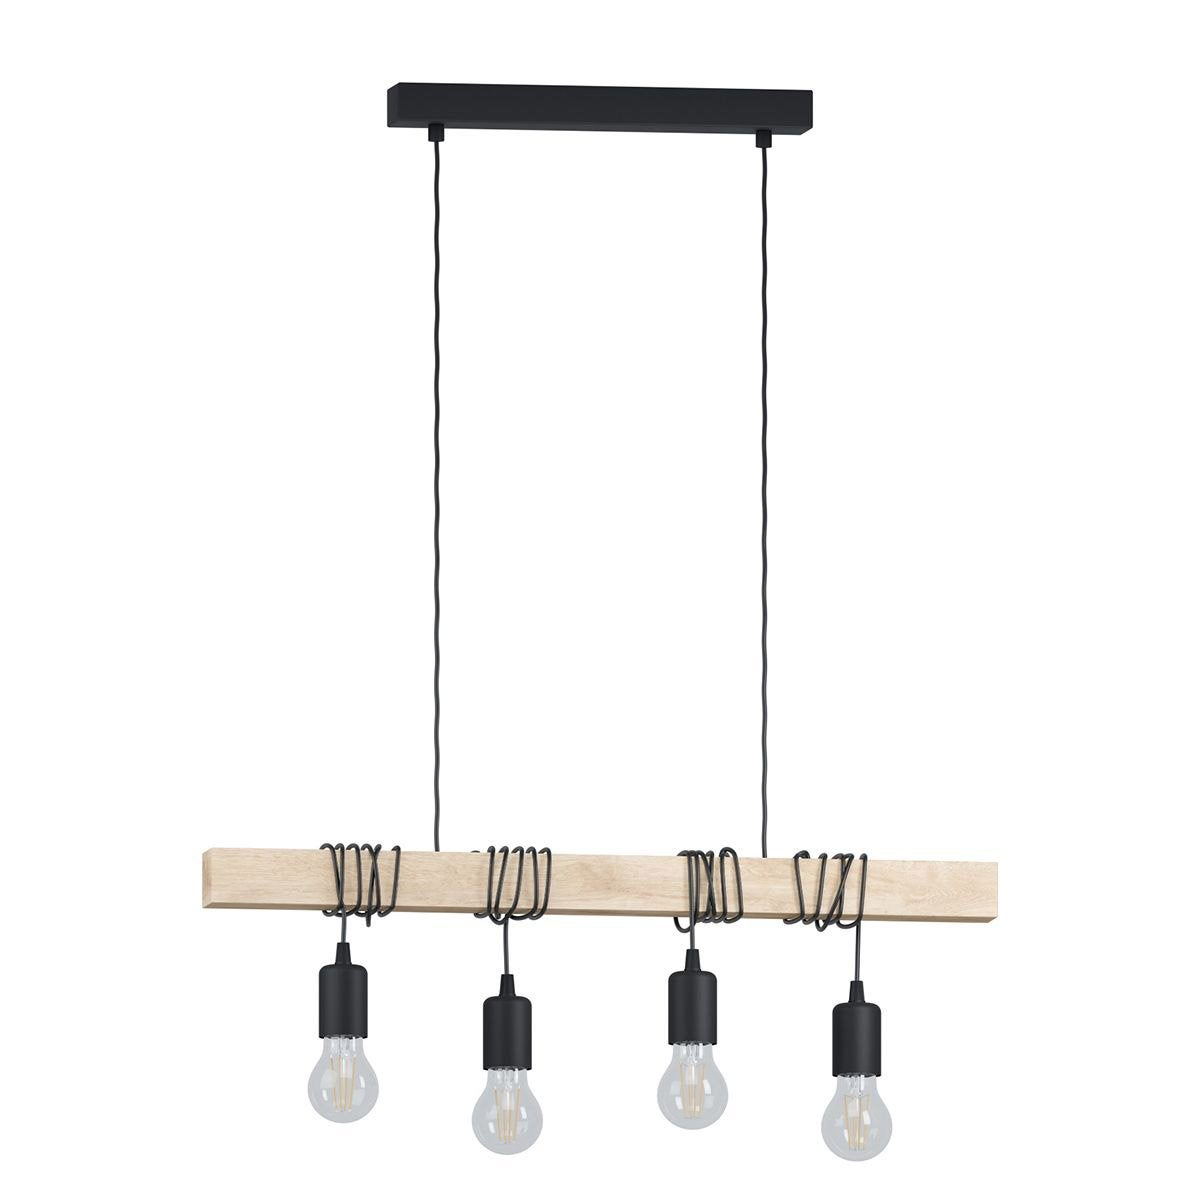 Suspension E27 Design Townshend Bois Noir 4 X 60 W Eglo Leroy Merlin